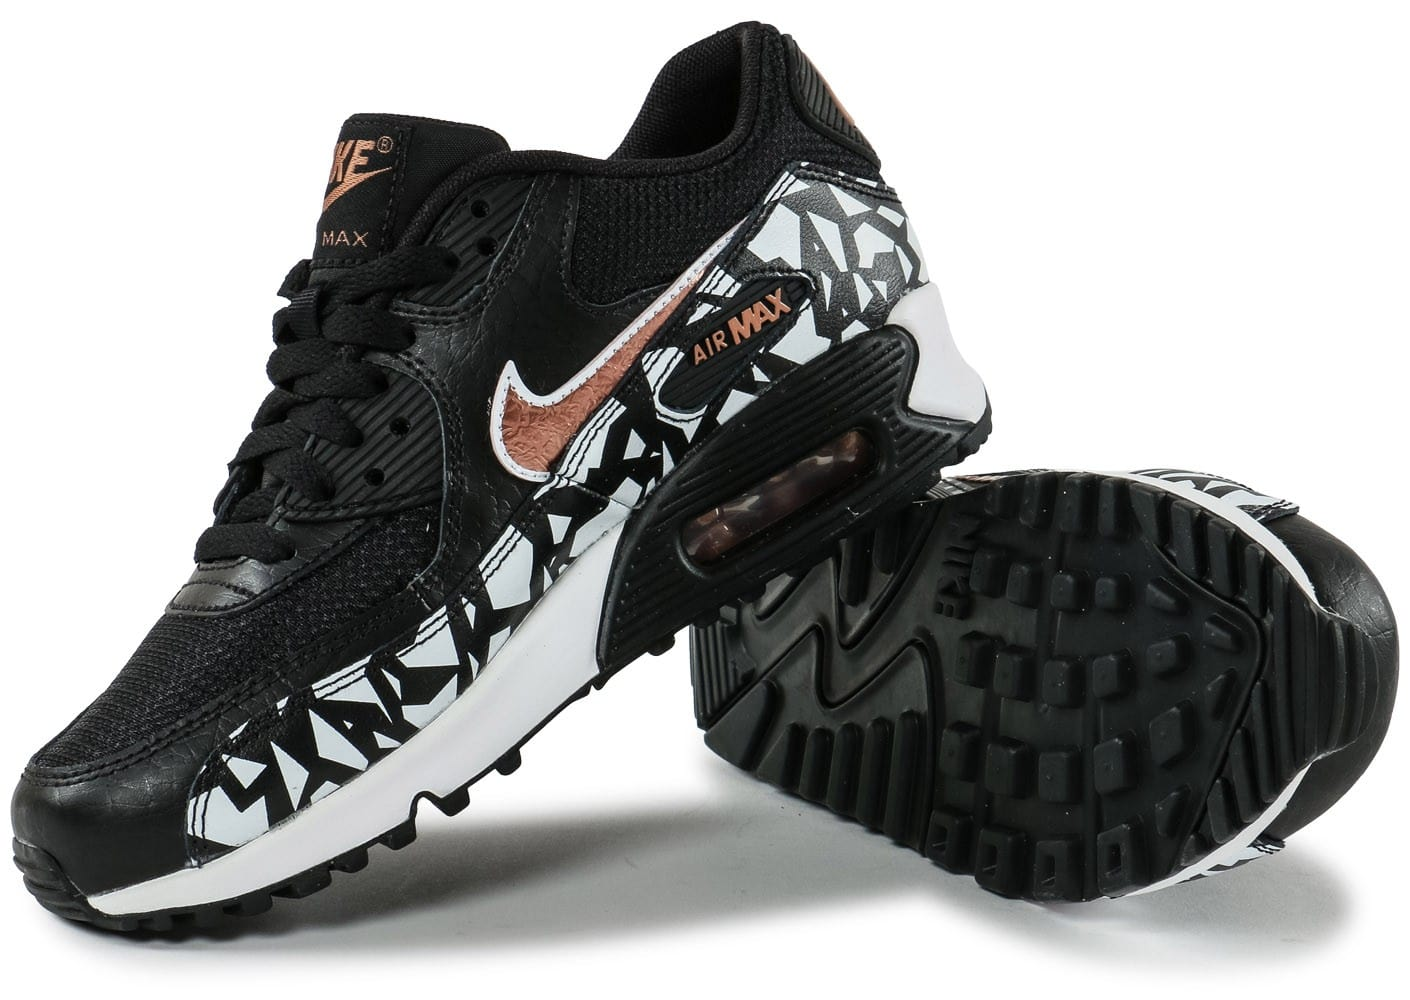 noire Chaussures Chaussures Nike 90 Junior Max Air Neymar FB eD9IEW2HY